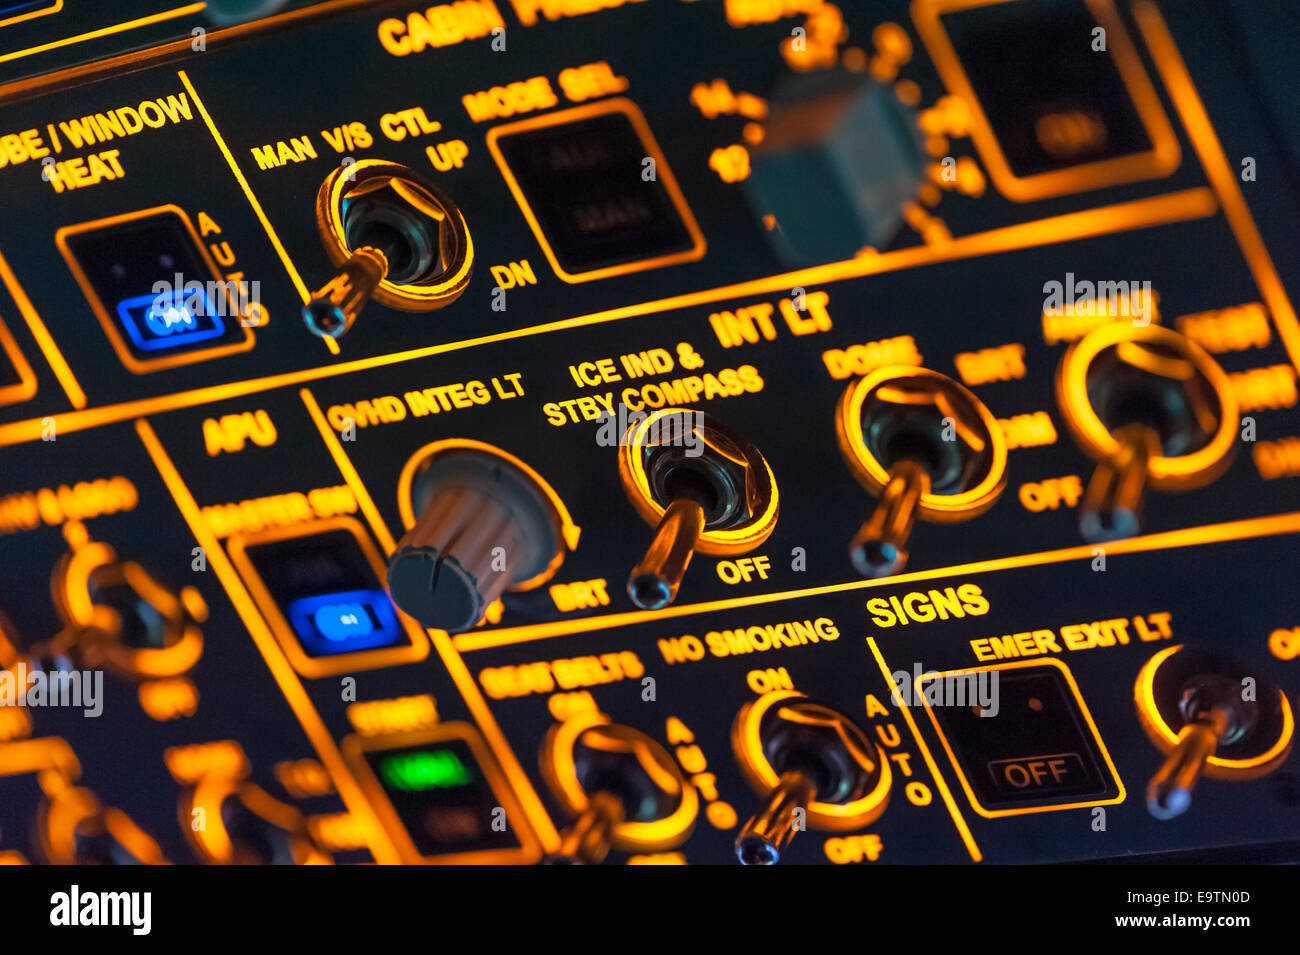 Cockpit of an Airbus A320 flight simulator that is used for training of professional airline pilots (overhead controls - Stock Image